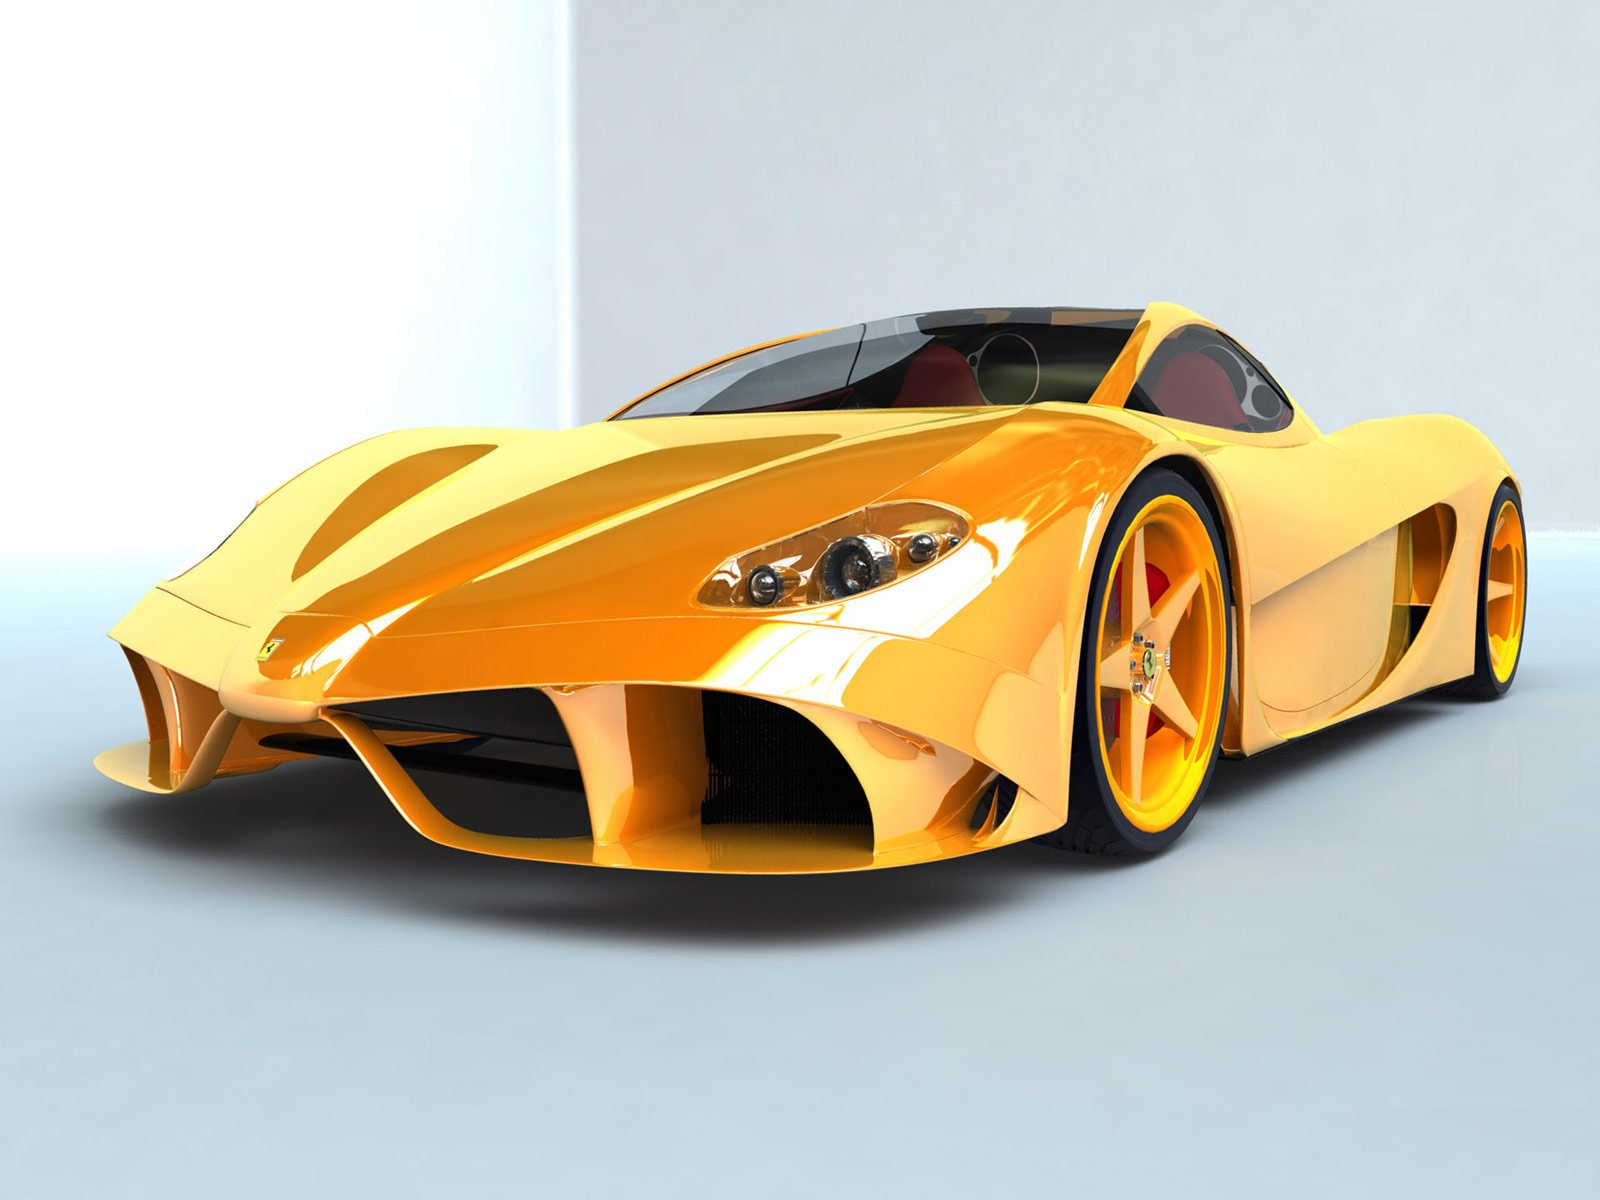 New cool cars wallpapers Pictures Of Cars Hd 1600x1200